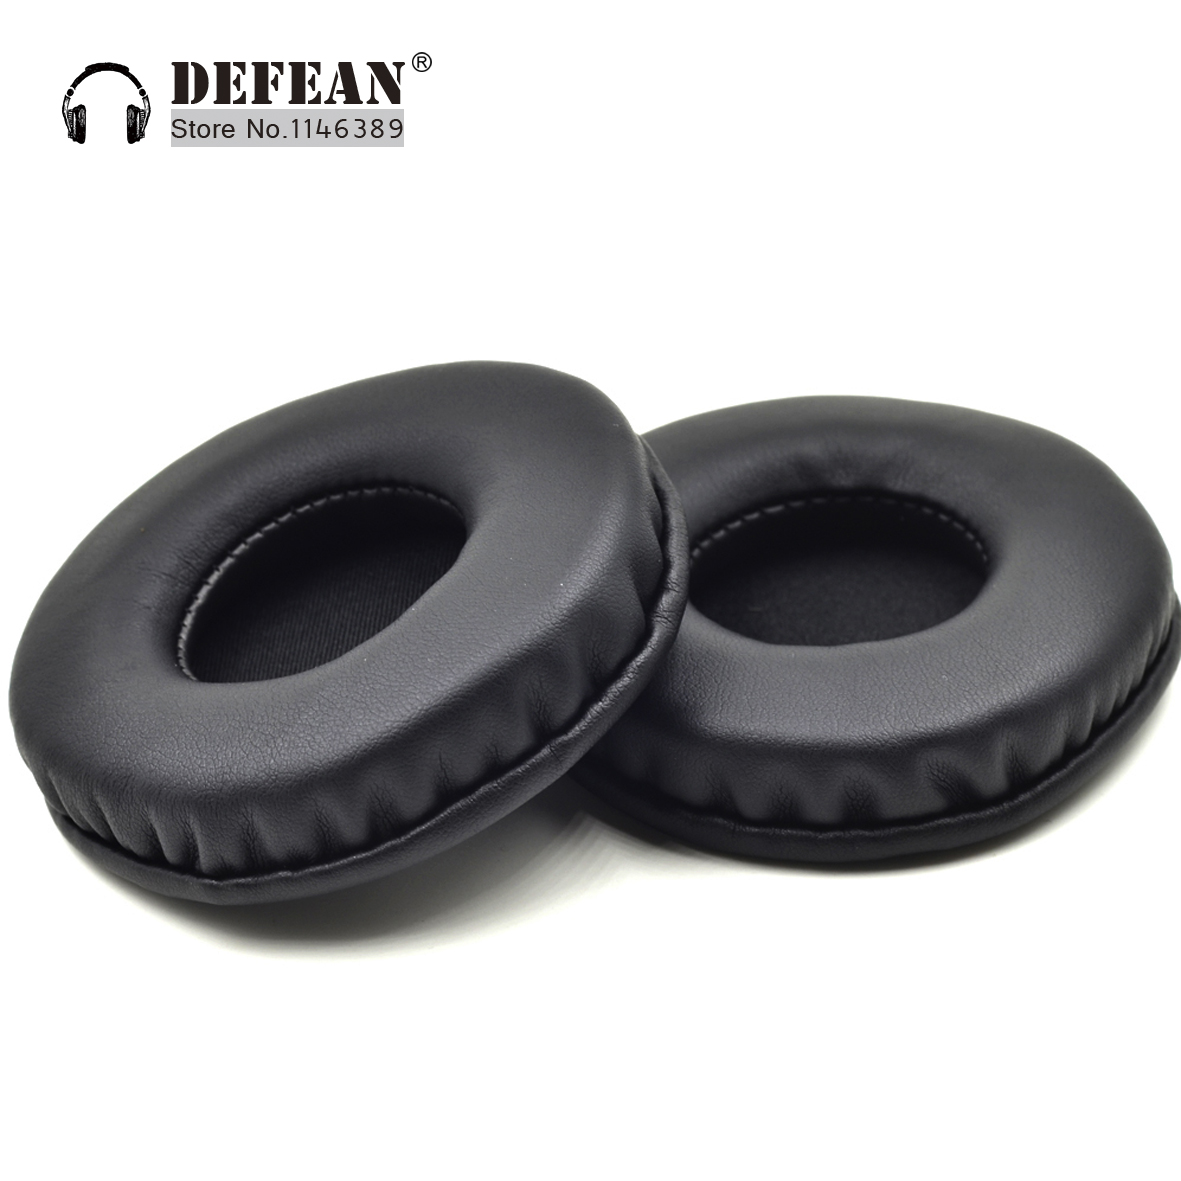 2 pair earpads ear pad cushion for Sony mdr ZX100 ZX102dpv ZX300 v100 headphones